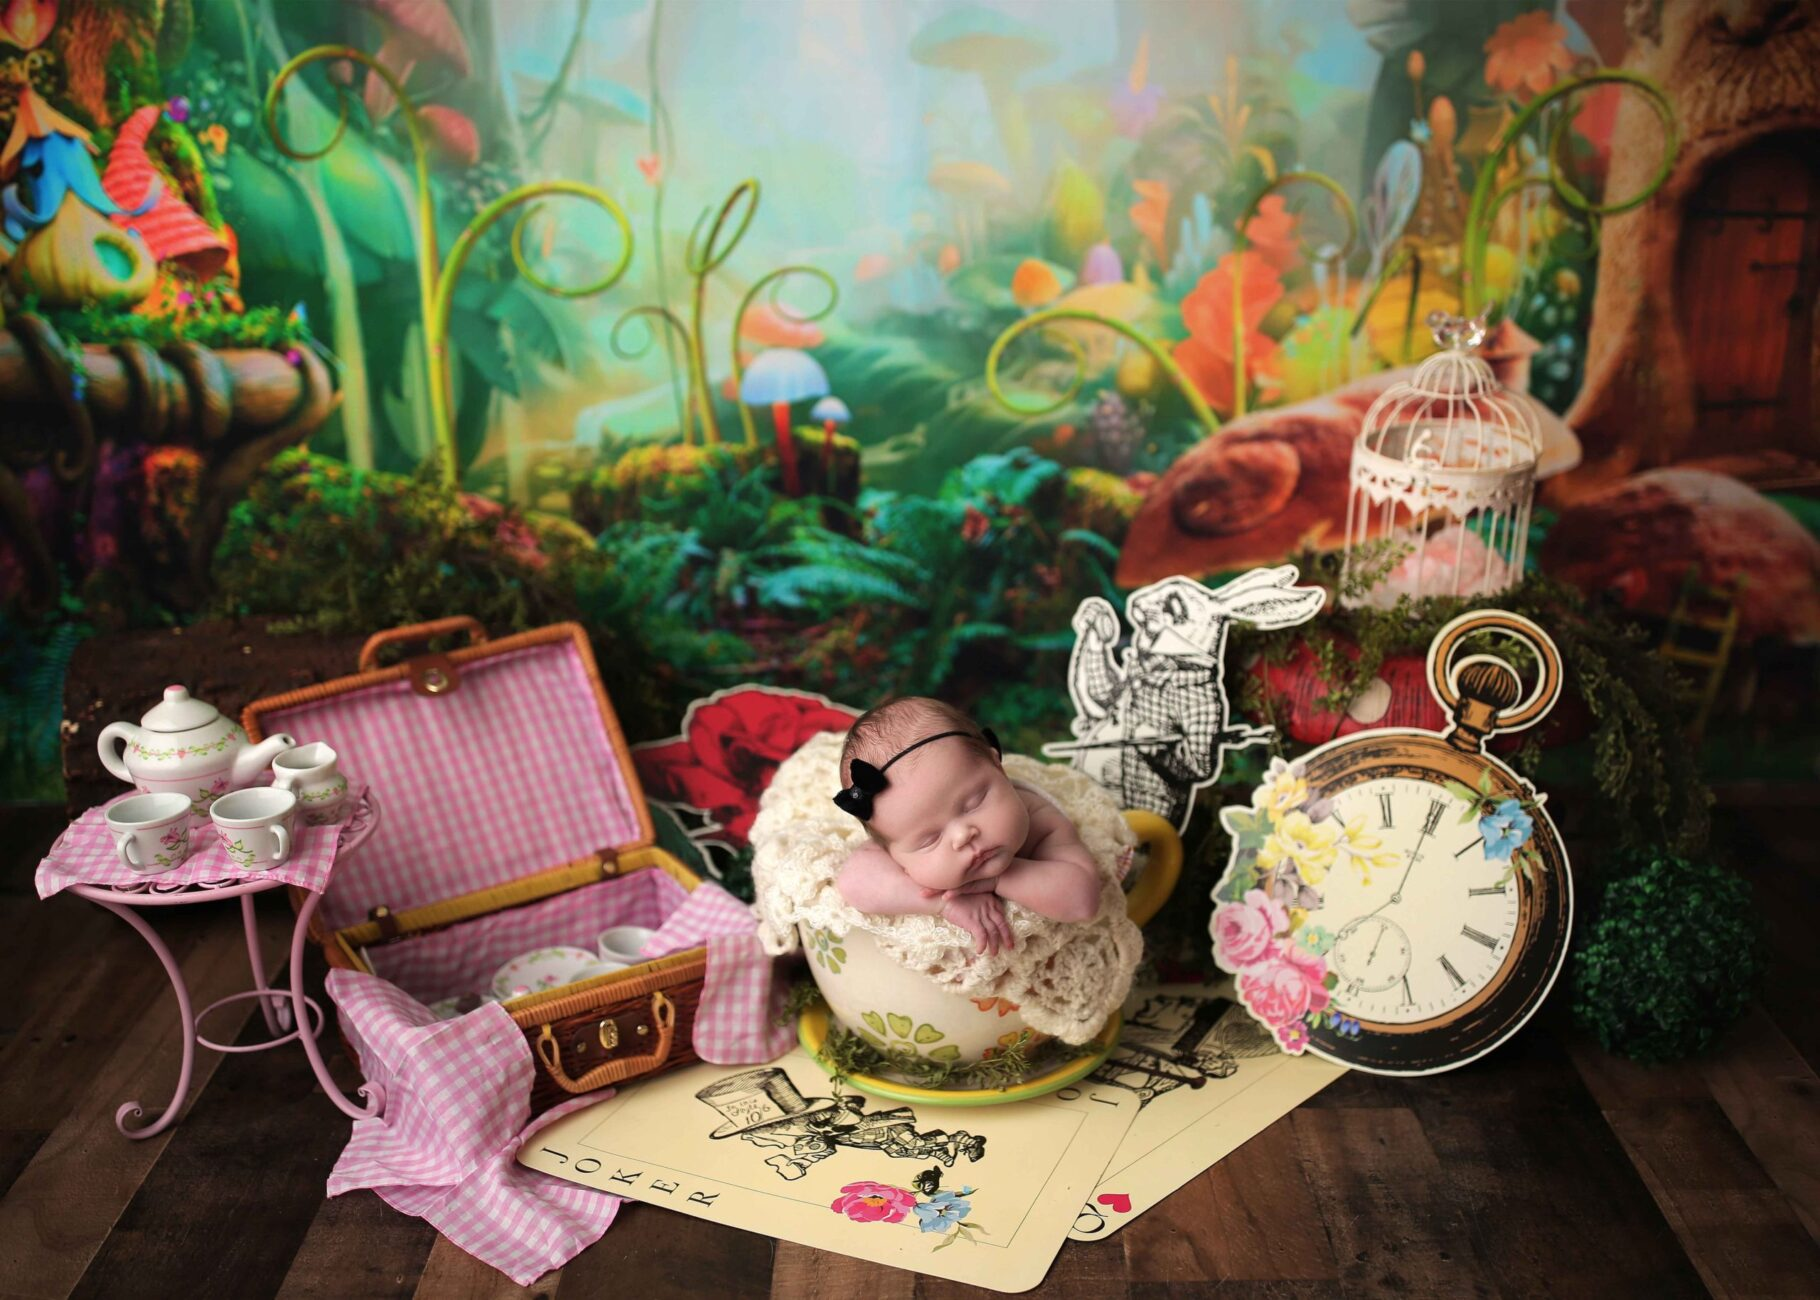 newborn session for girl themed alice's adventures in the wonderland